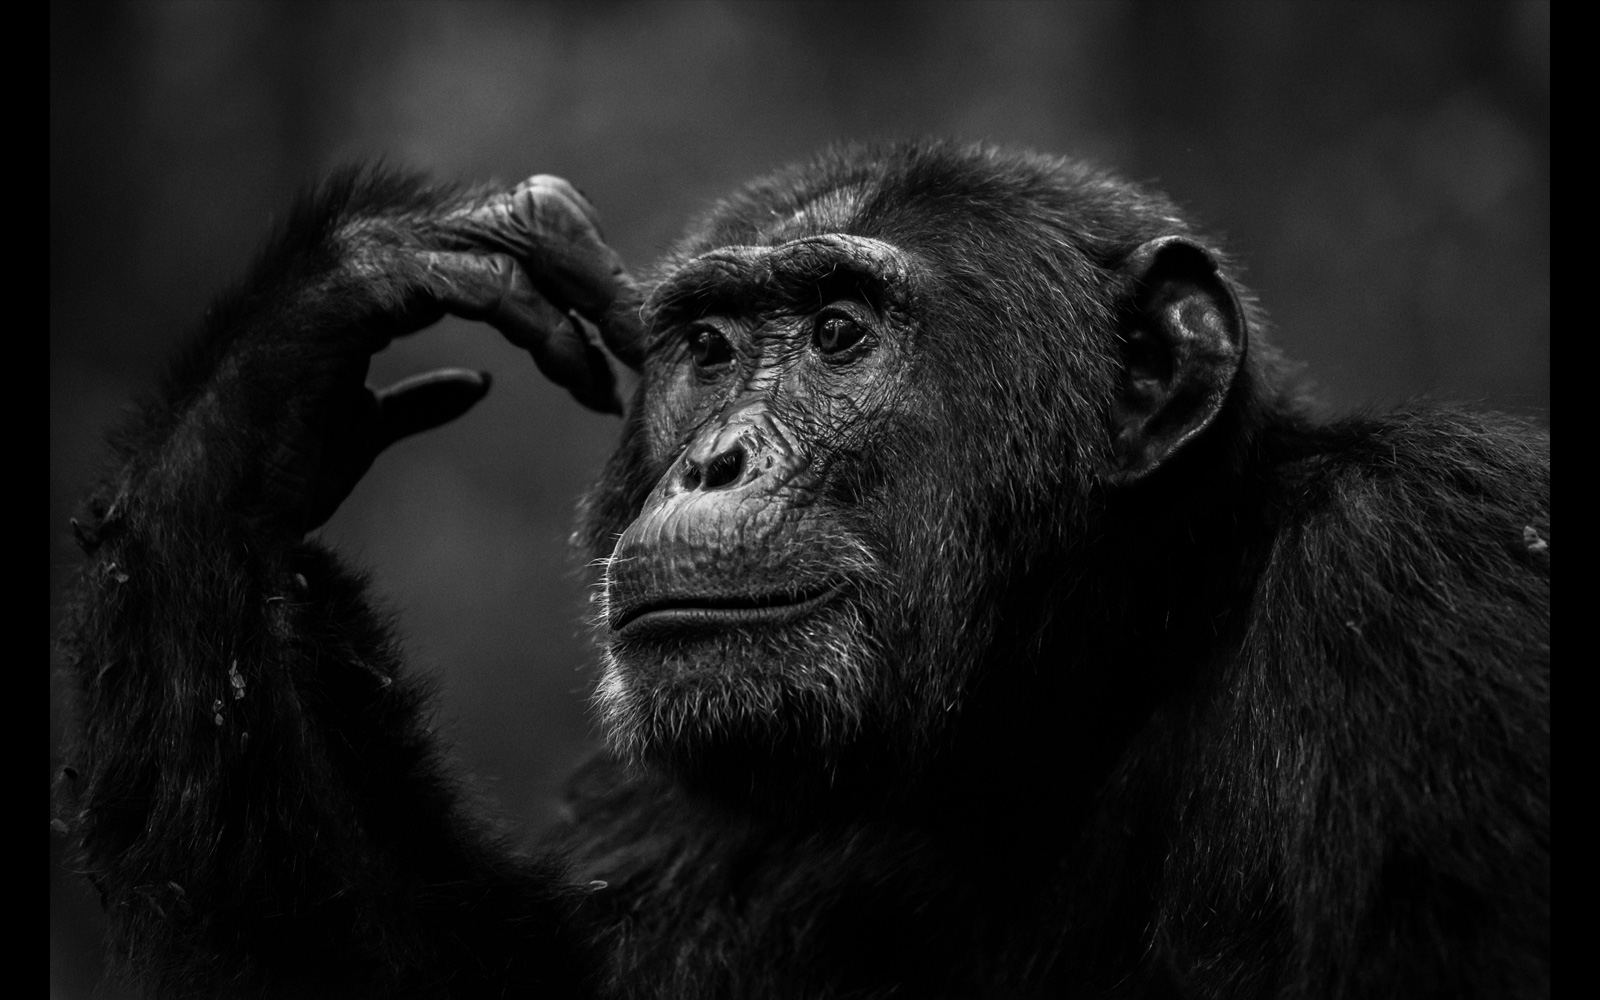 """The Thinker"" – chimpanzee in Kibale National Park, Uganda © Yaron Schmid"